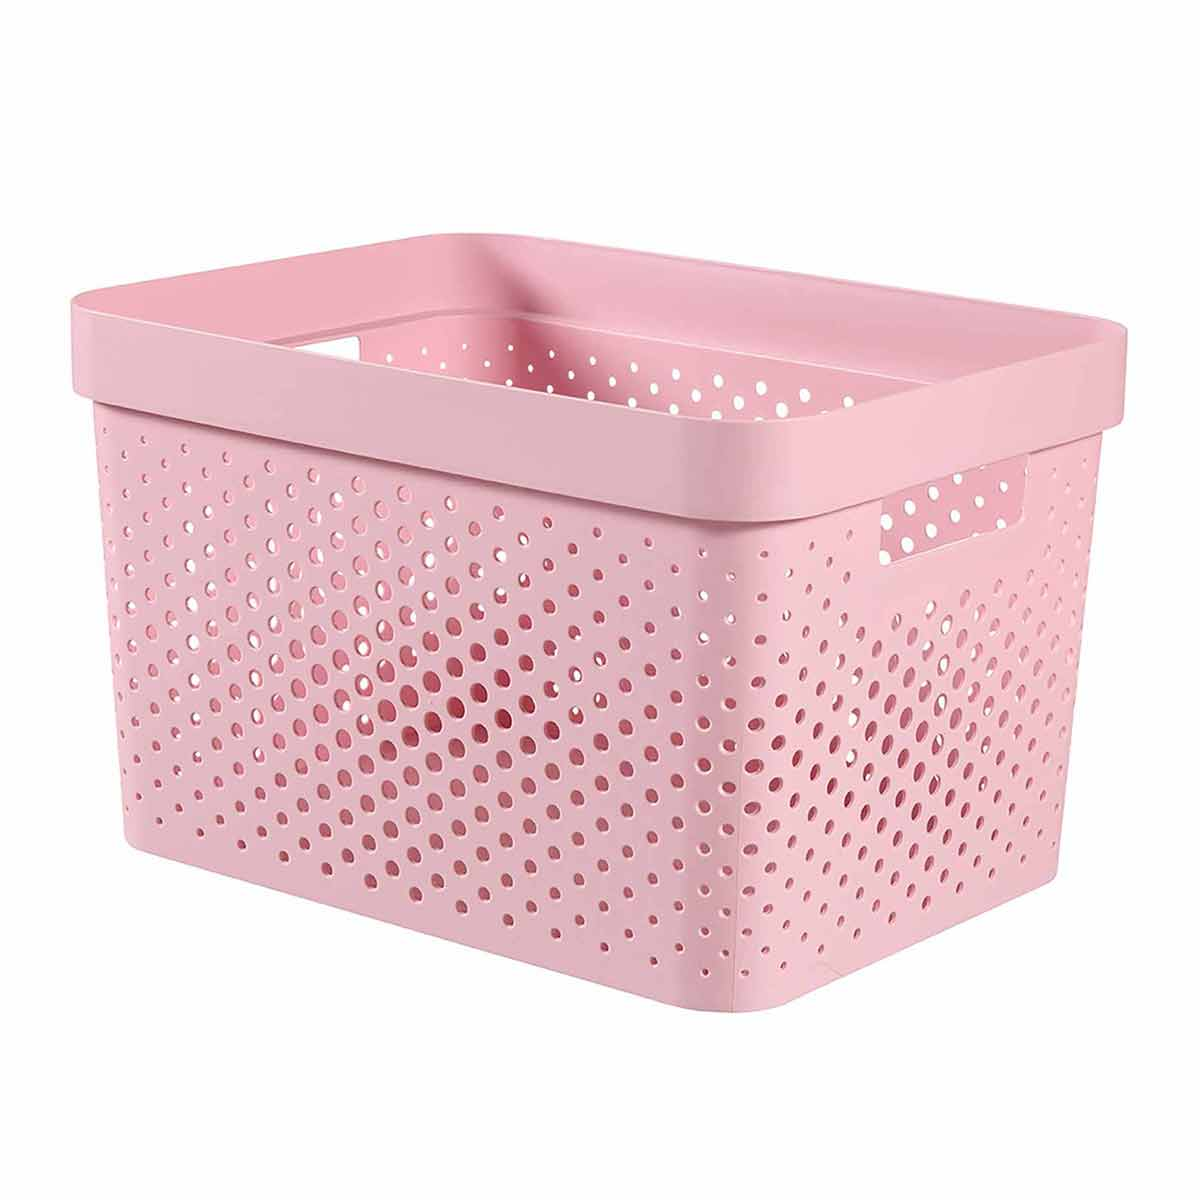 Curver Infinity Recycled Storage Basket 17 Litre, Pink